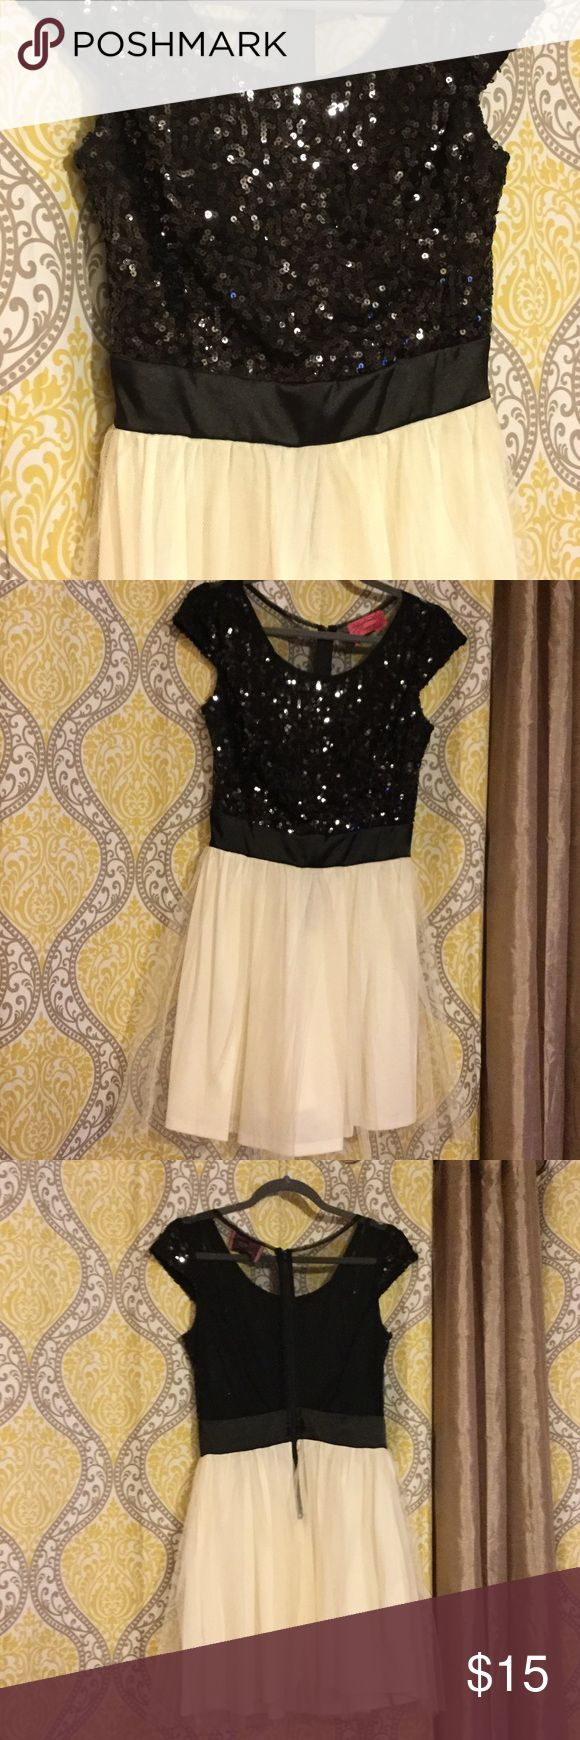 Black and white sequined dress Top is black with sequins on front. The back is black see through mesh. Bottom is two layers. Bottom layer is cotton and layer over that is white meshy. pompous girly Dresses Mini